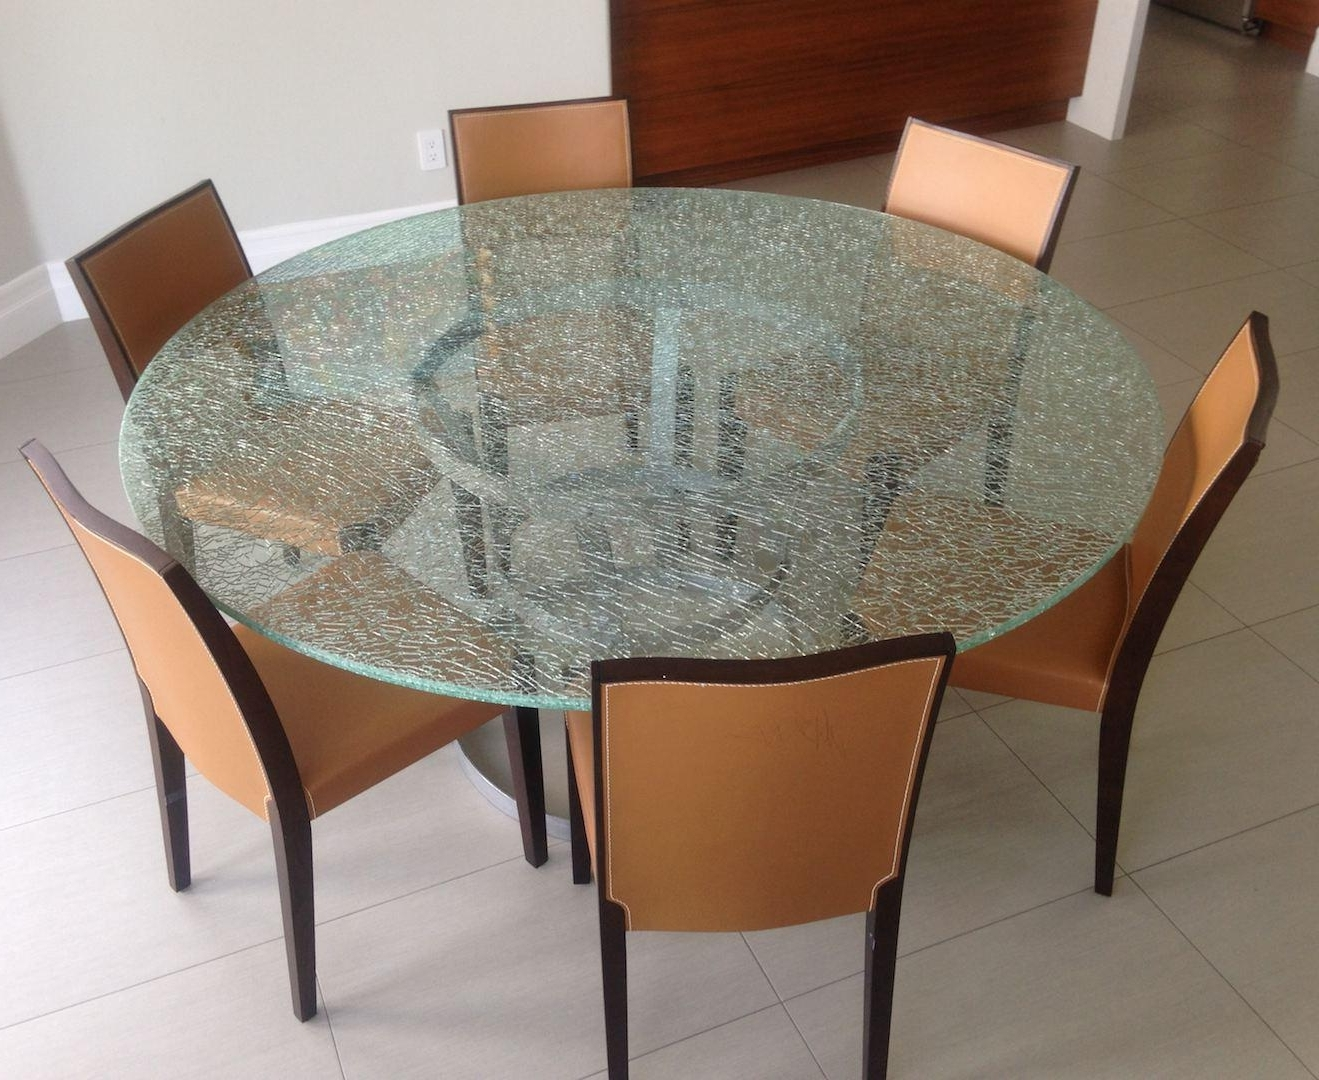 Crackle Glass Dining Table Top : House Photos – Crackle Glass Dining Within Popular Wood Glass Dining Tables (Gallery 14 of 25)